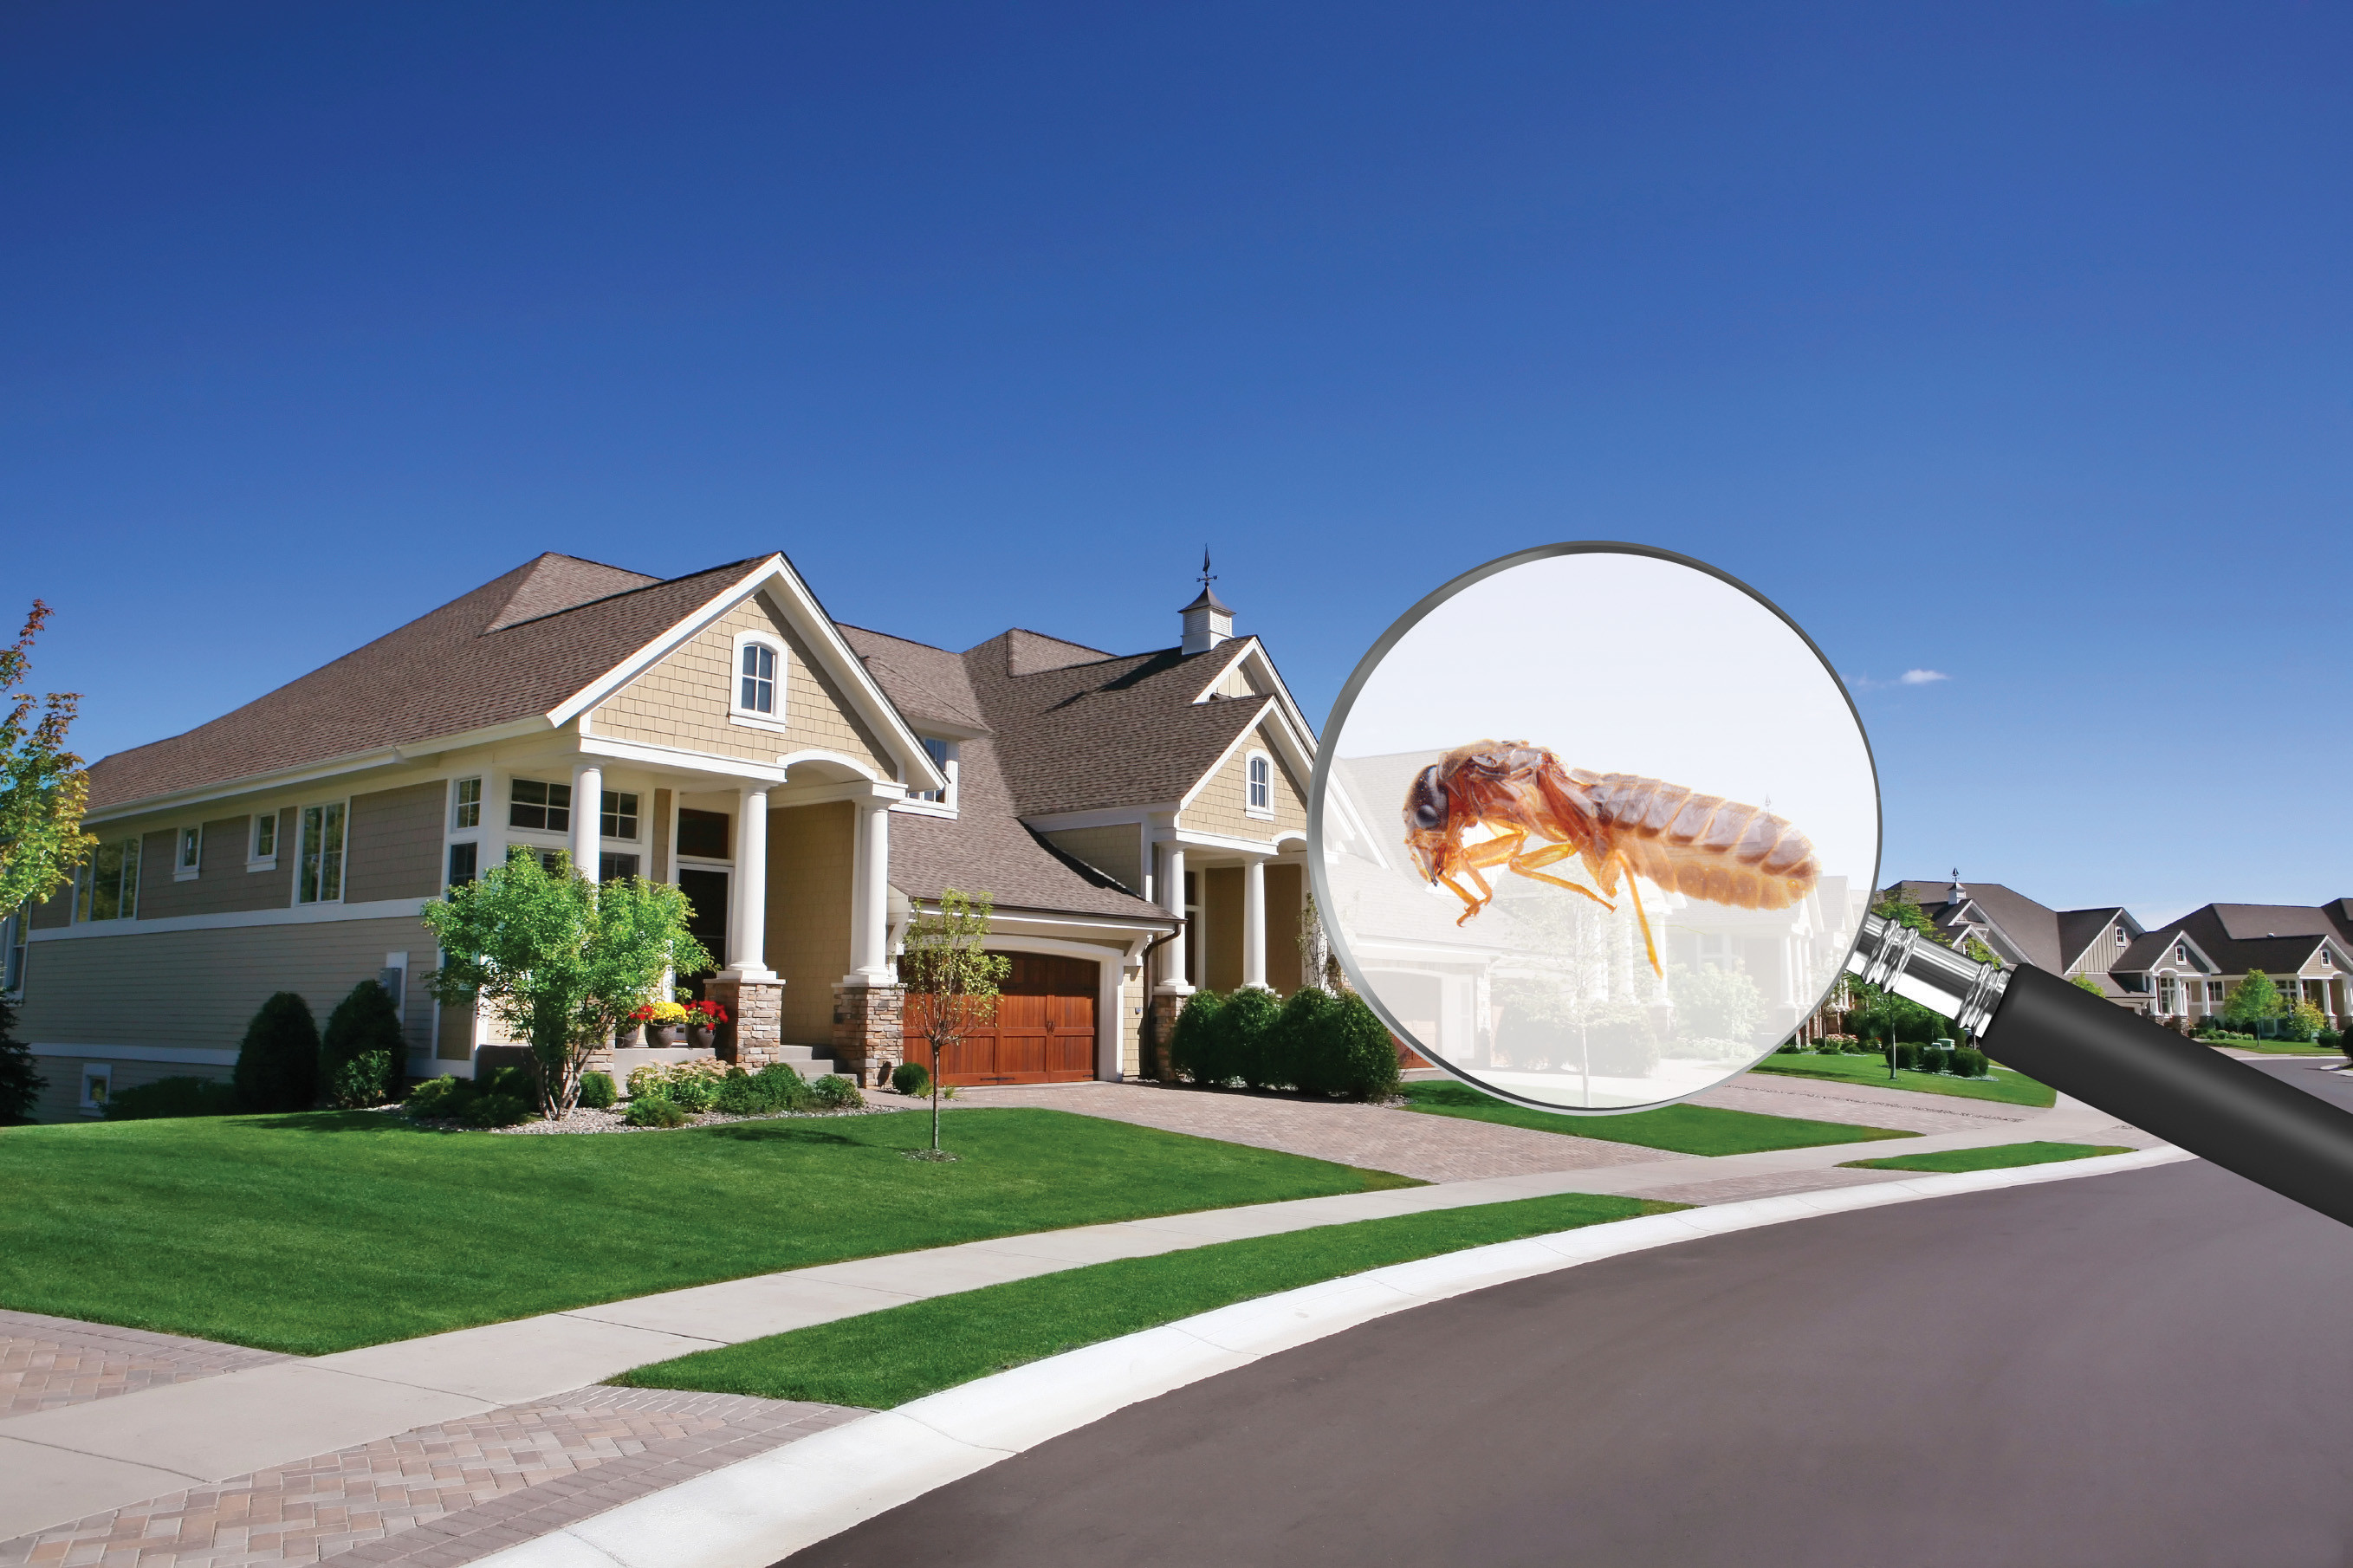 How To Sell Or Buy A House With Termite Damage